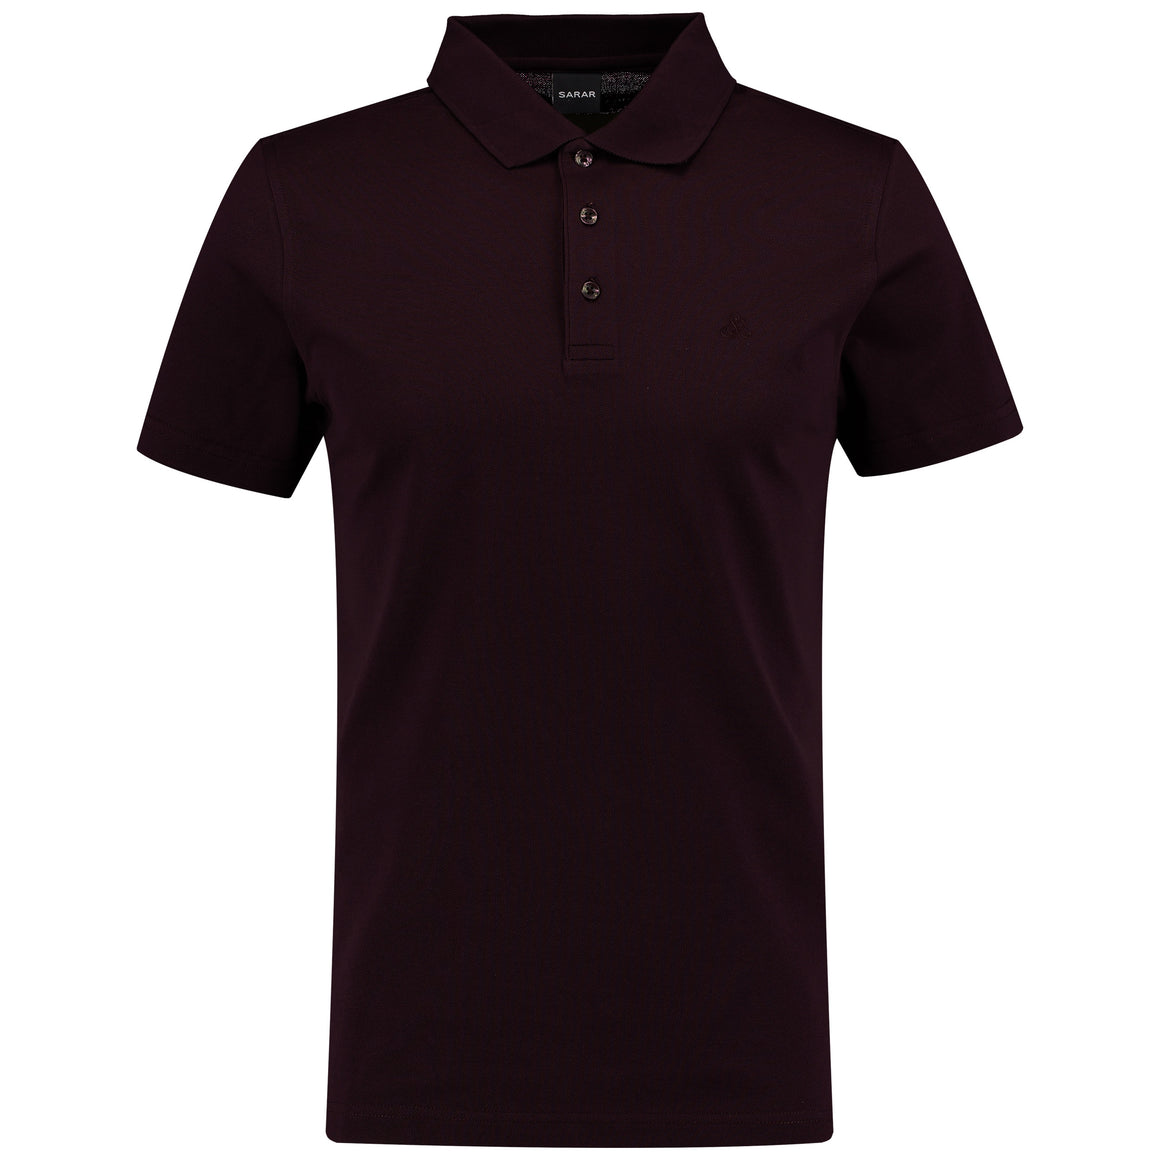 Dark purple t-shirt for men